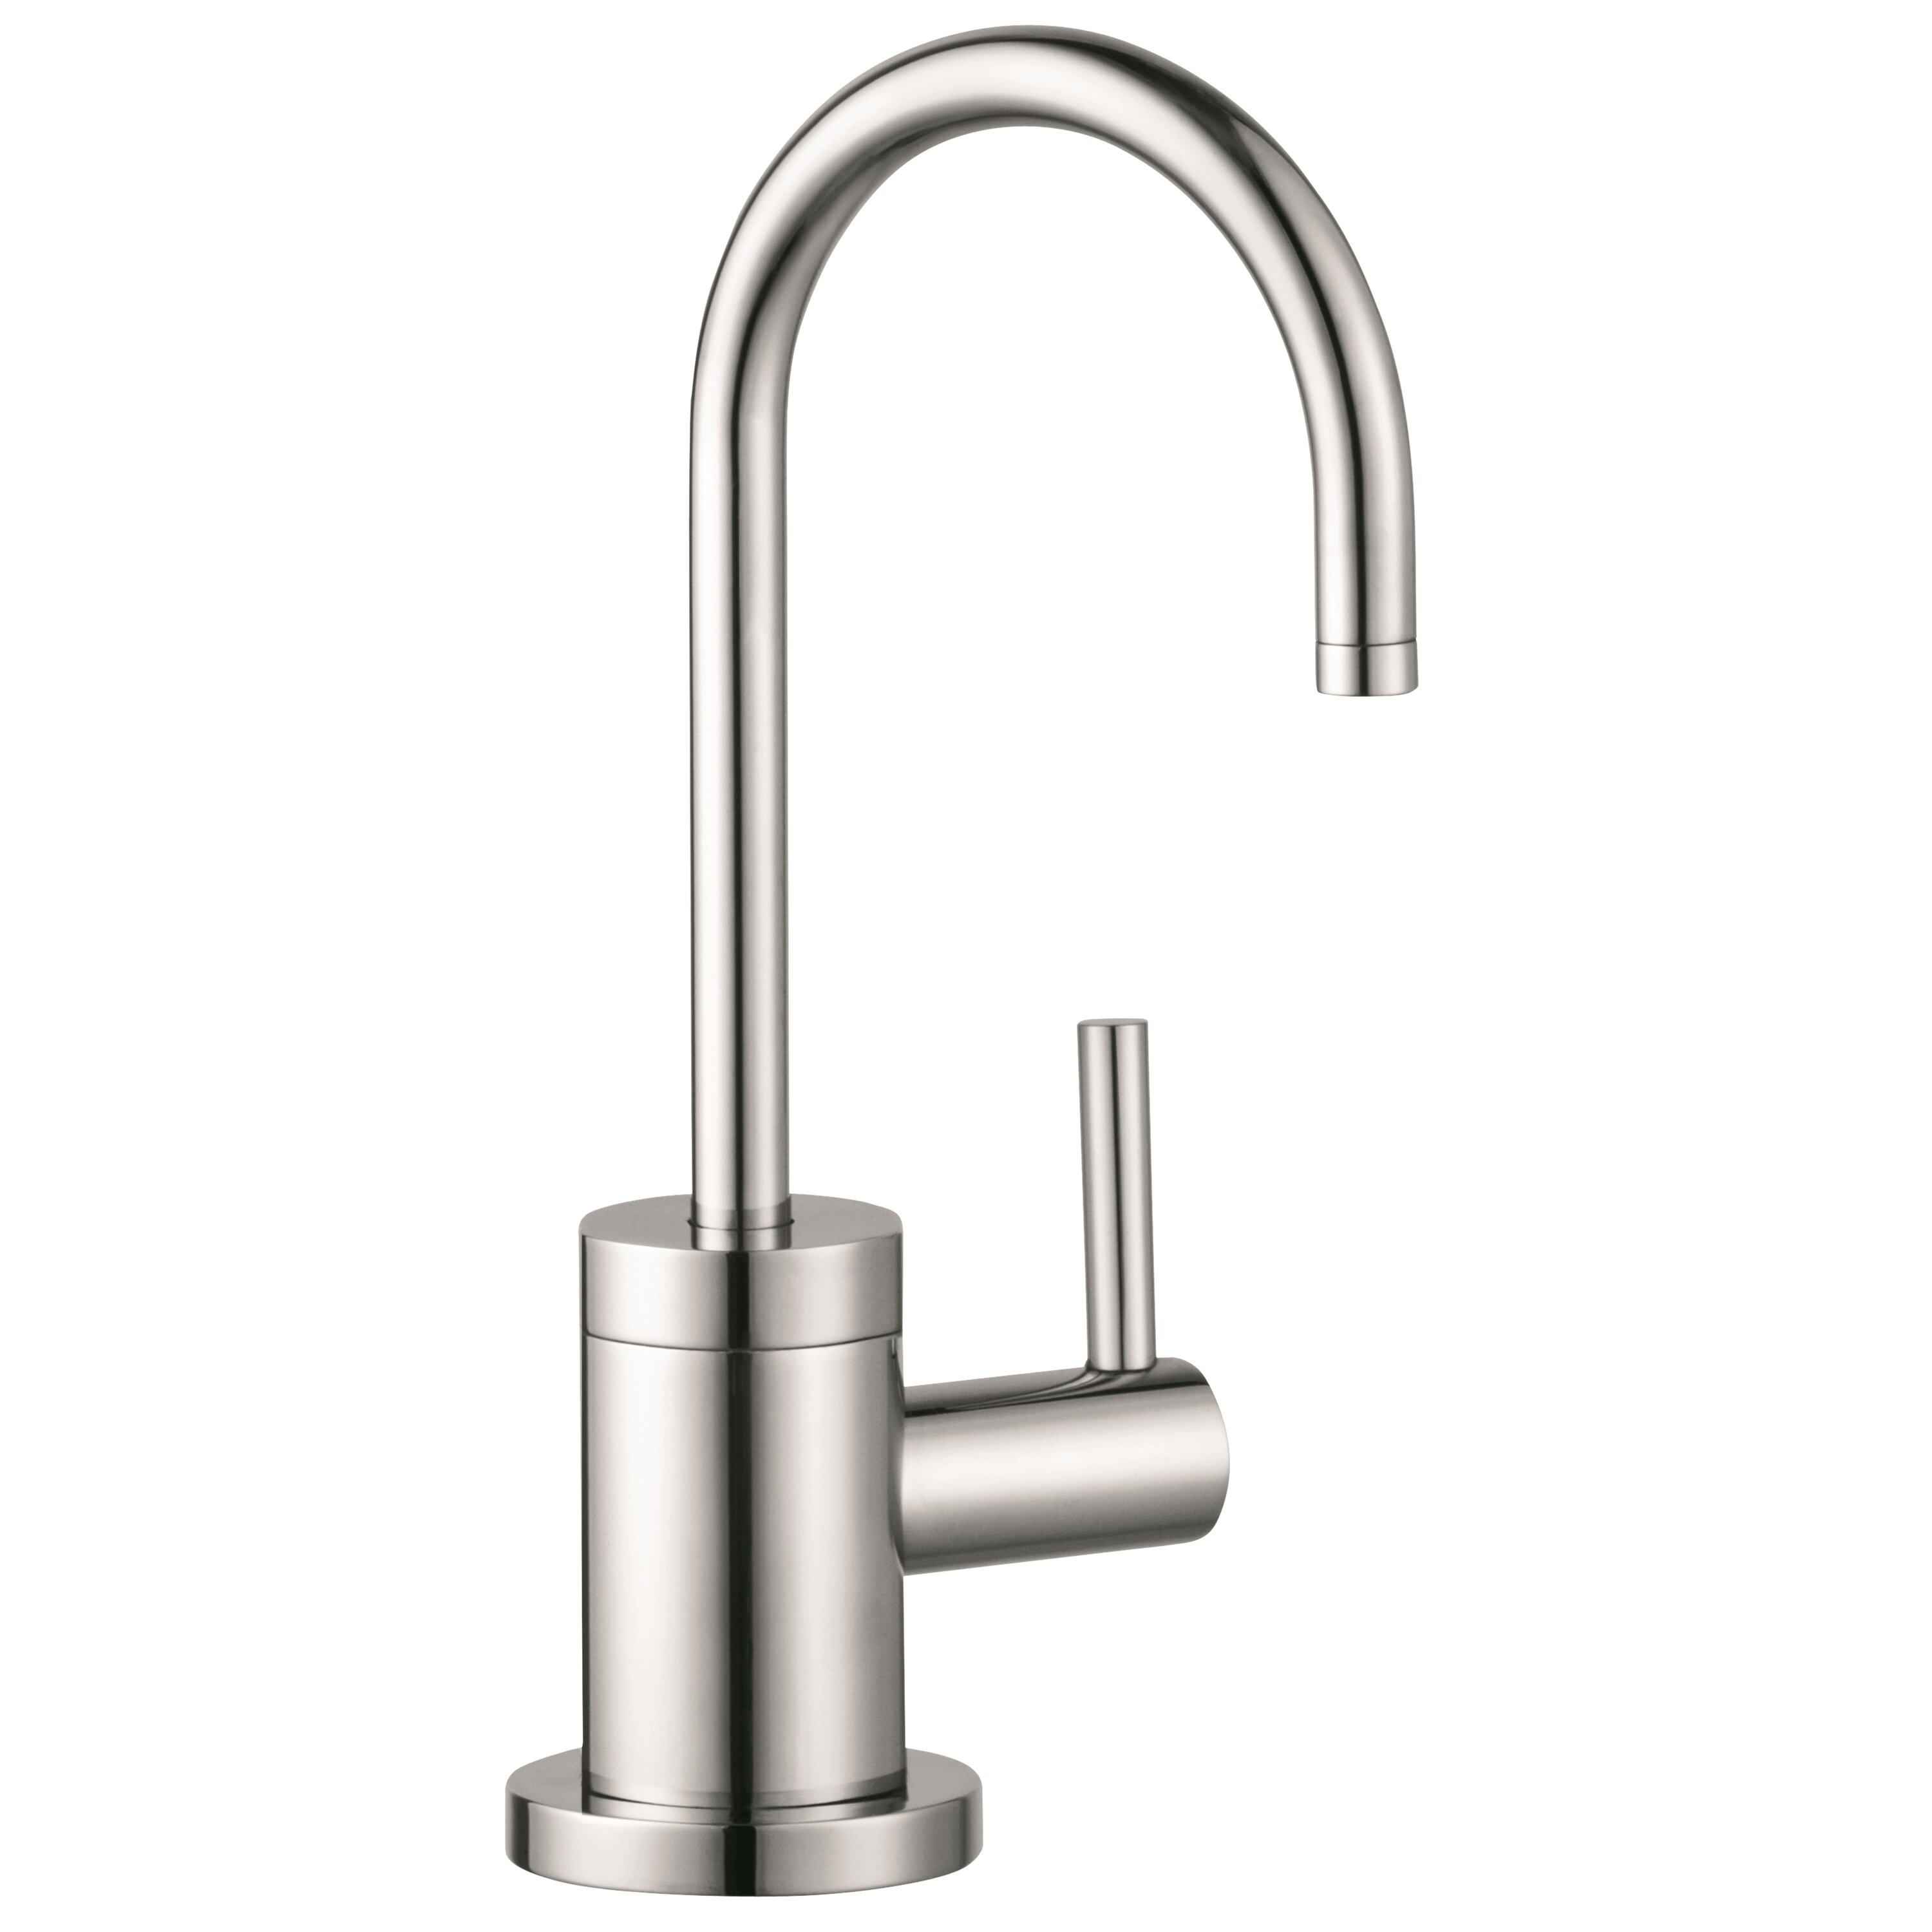 hansgrohe talis s one handle deck mounted cold water hansgrohe 14877001 talis s 2 spray higharc kitchen faucet